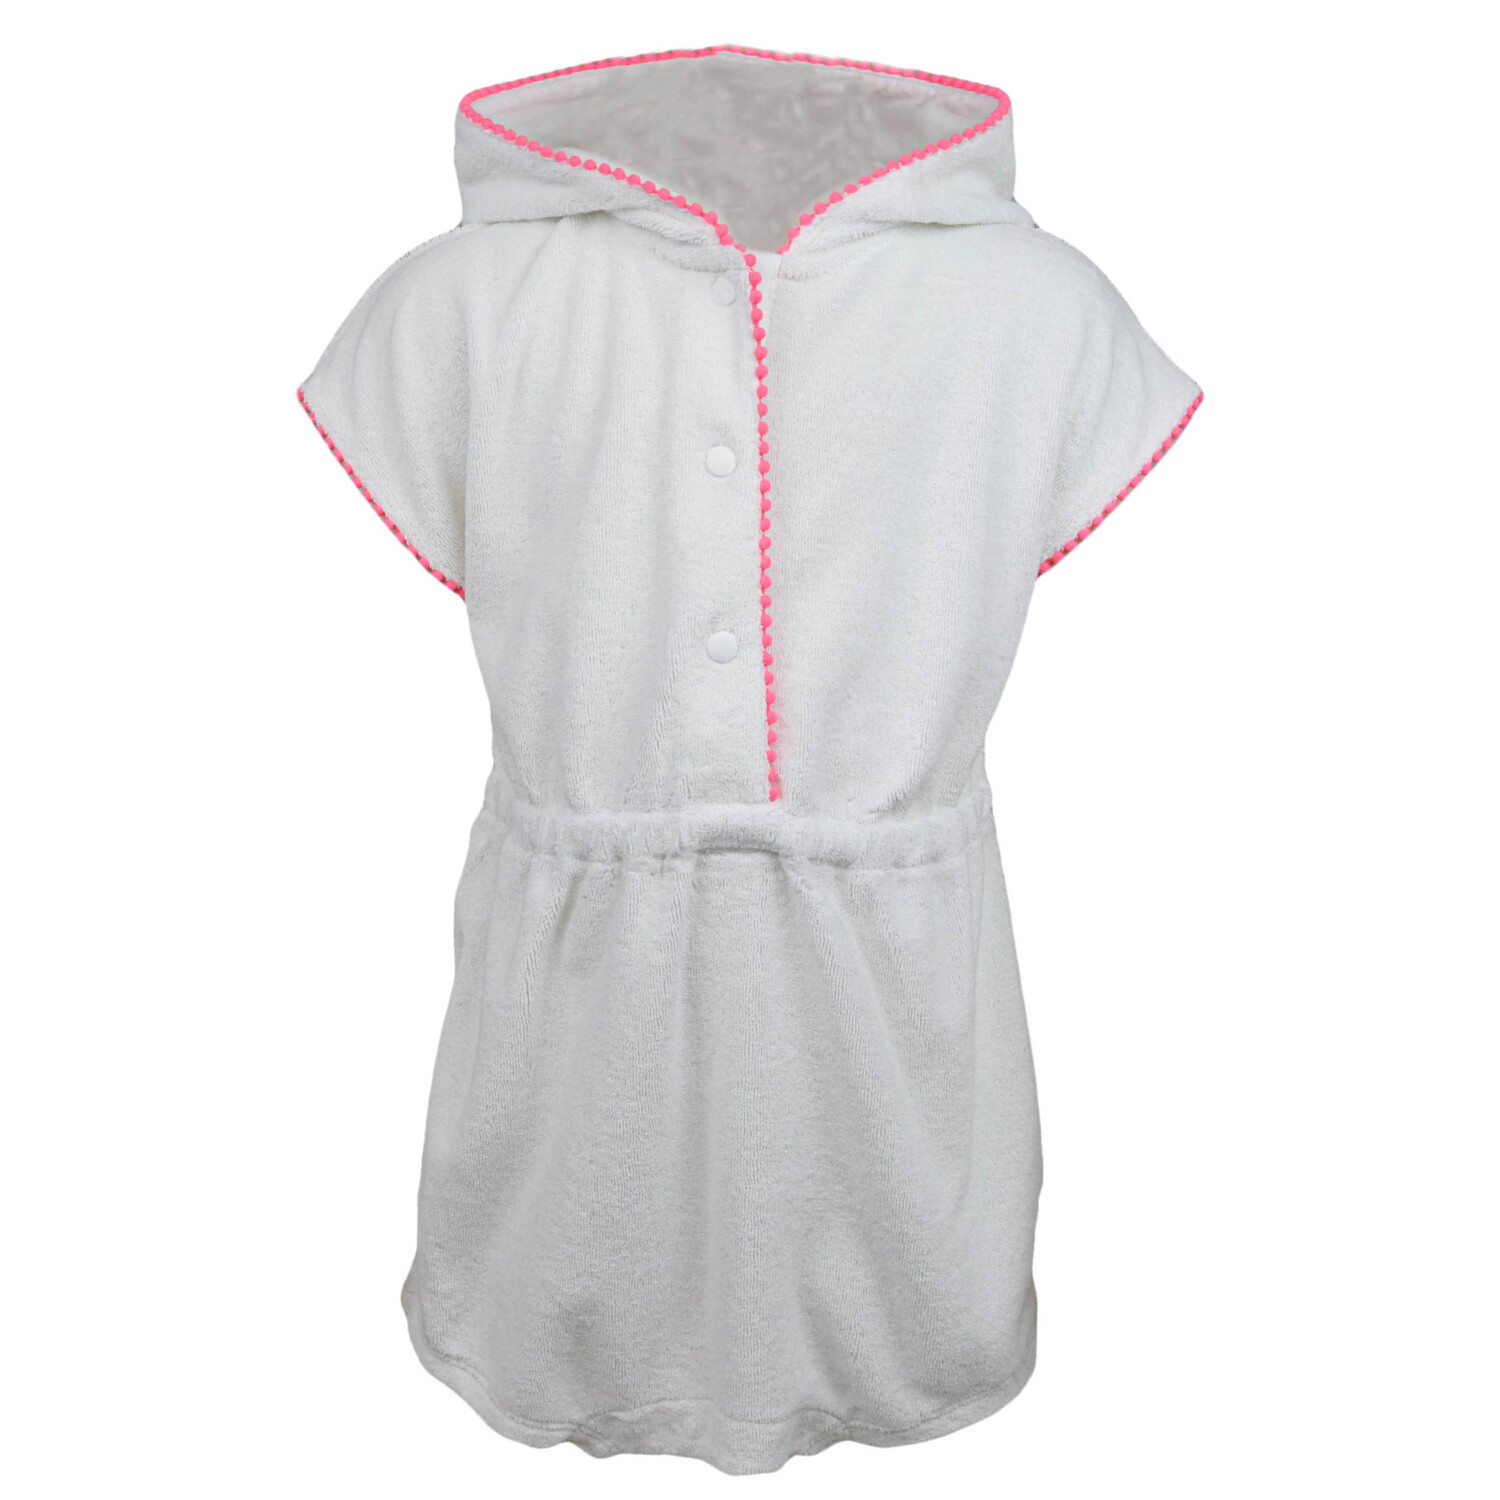 Janie And Jack Hooded Terry One Piece Romper - 18-24 Months - White